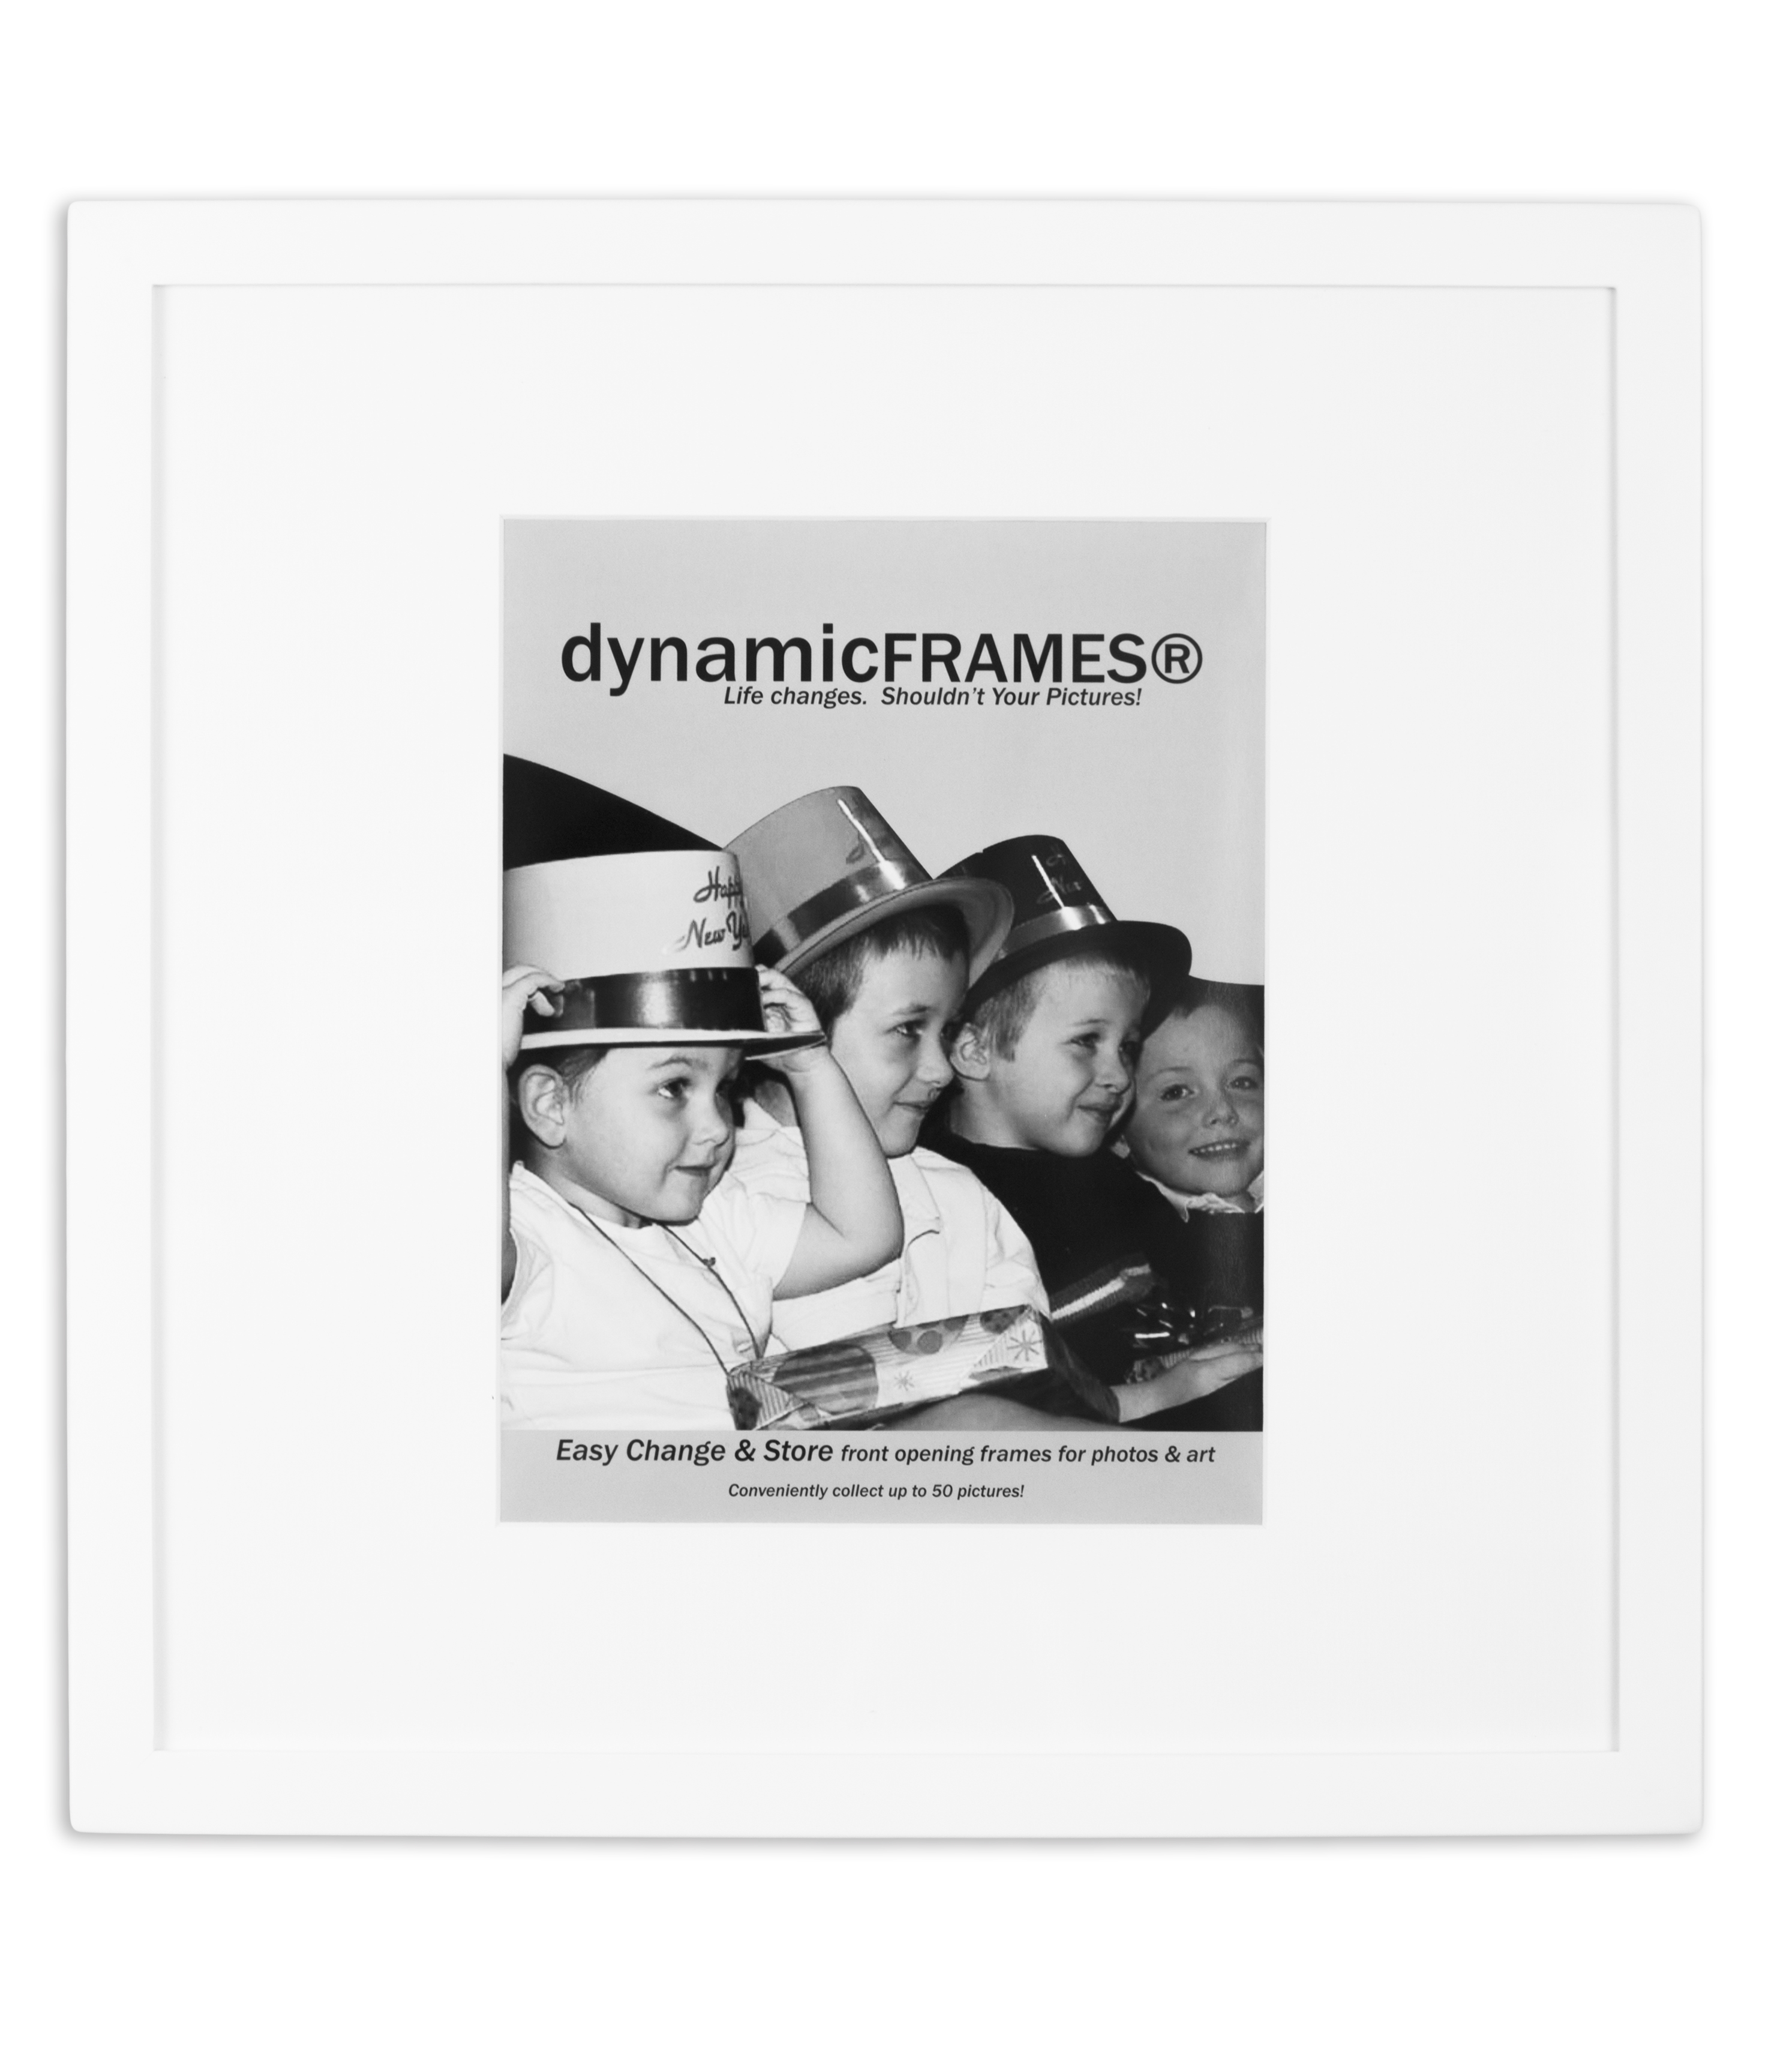 dynamicSQUARE for 8x10 prints & photos - DSQR-810